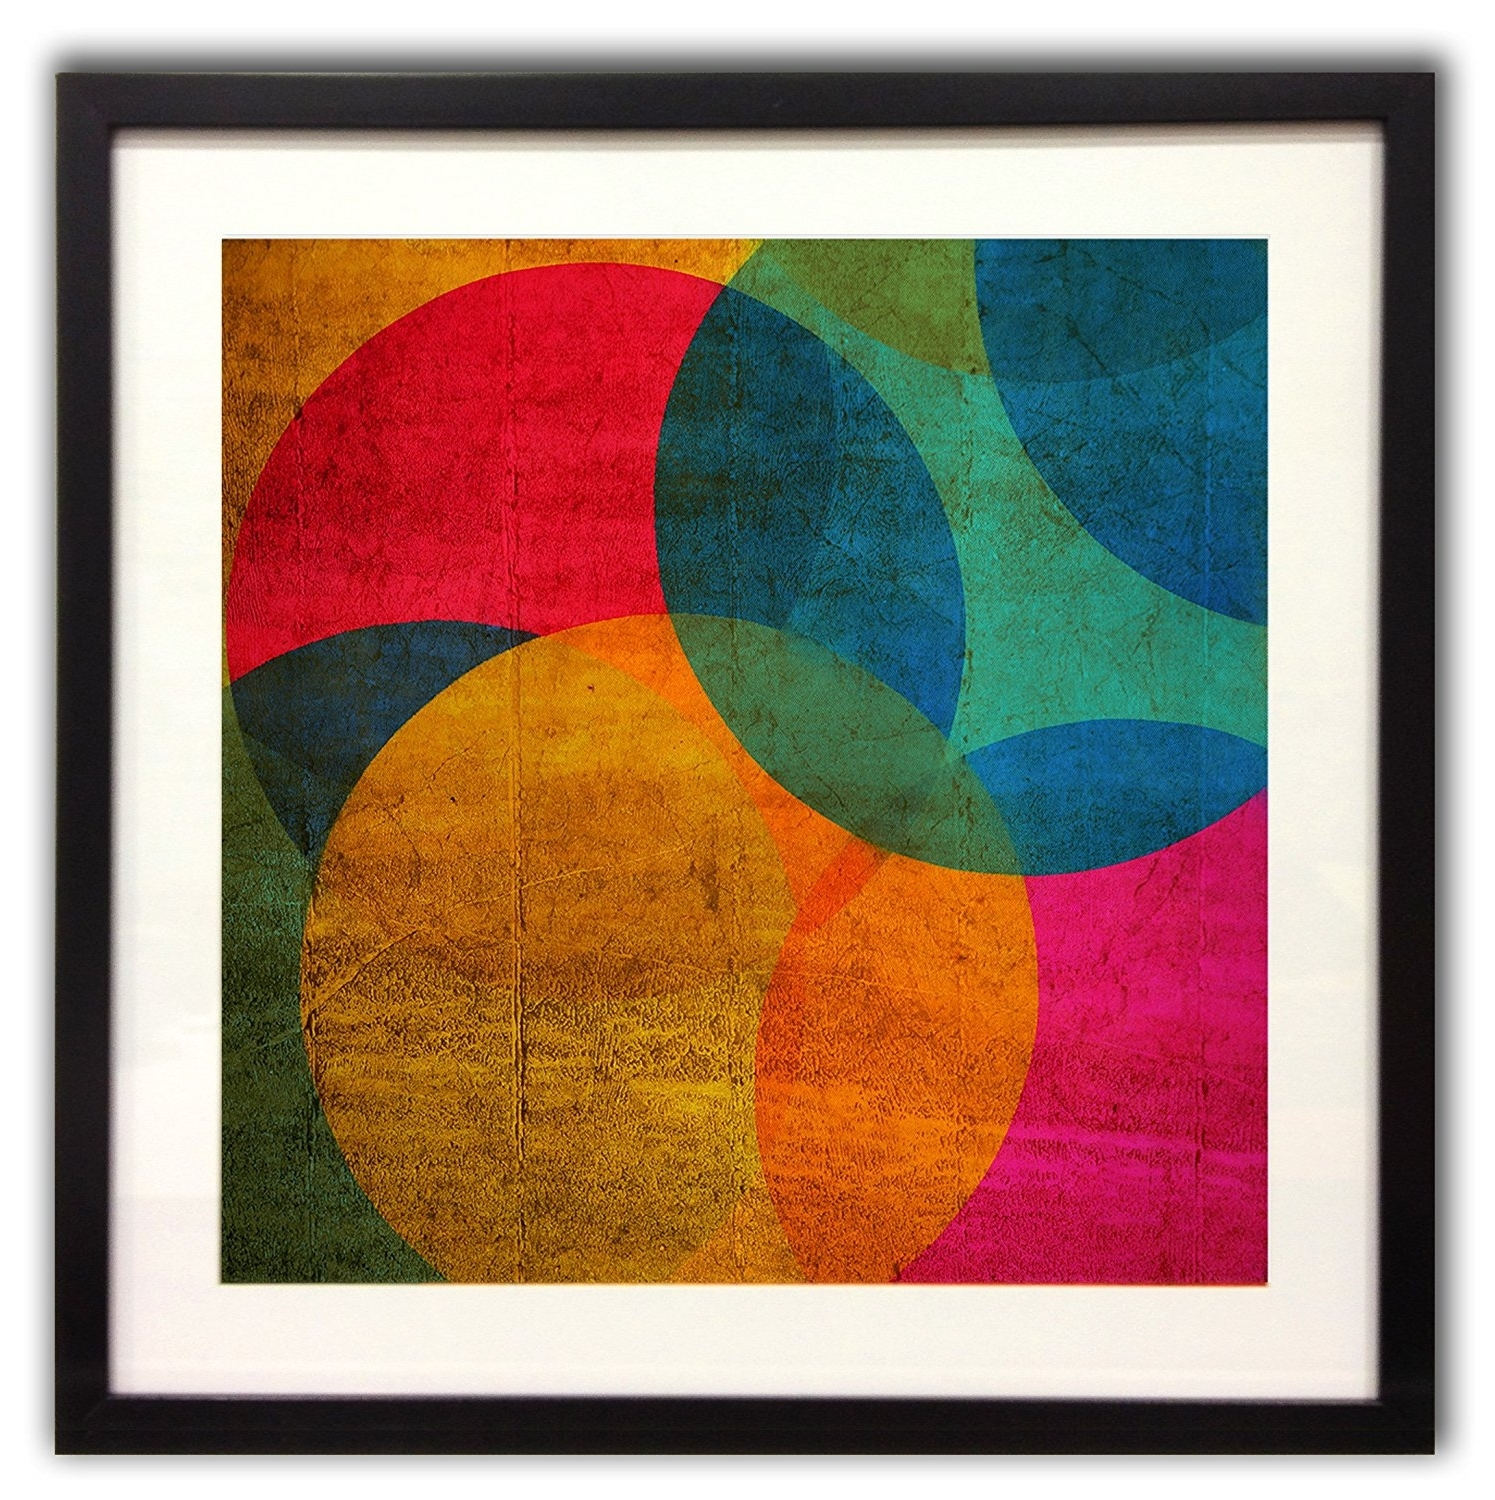 Art For Home Neon Circle Multi Colour Abrstract Framed Wall Art For Famous House Of Fraser Canvas Wall Art (View 1 of 15)